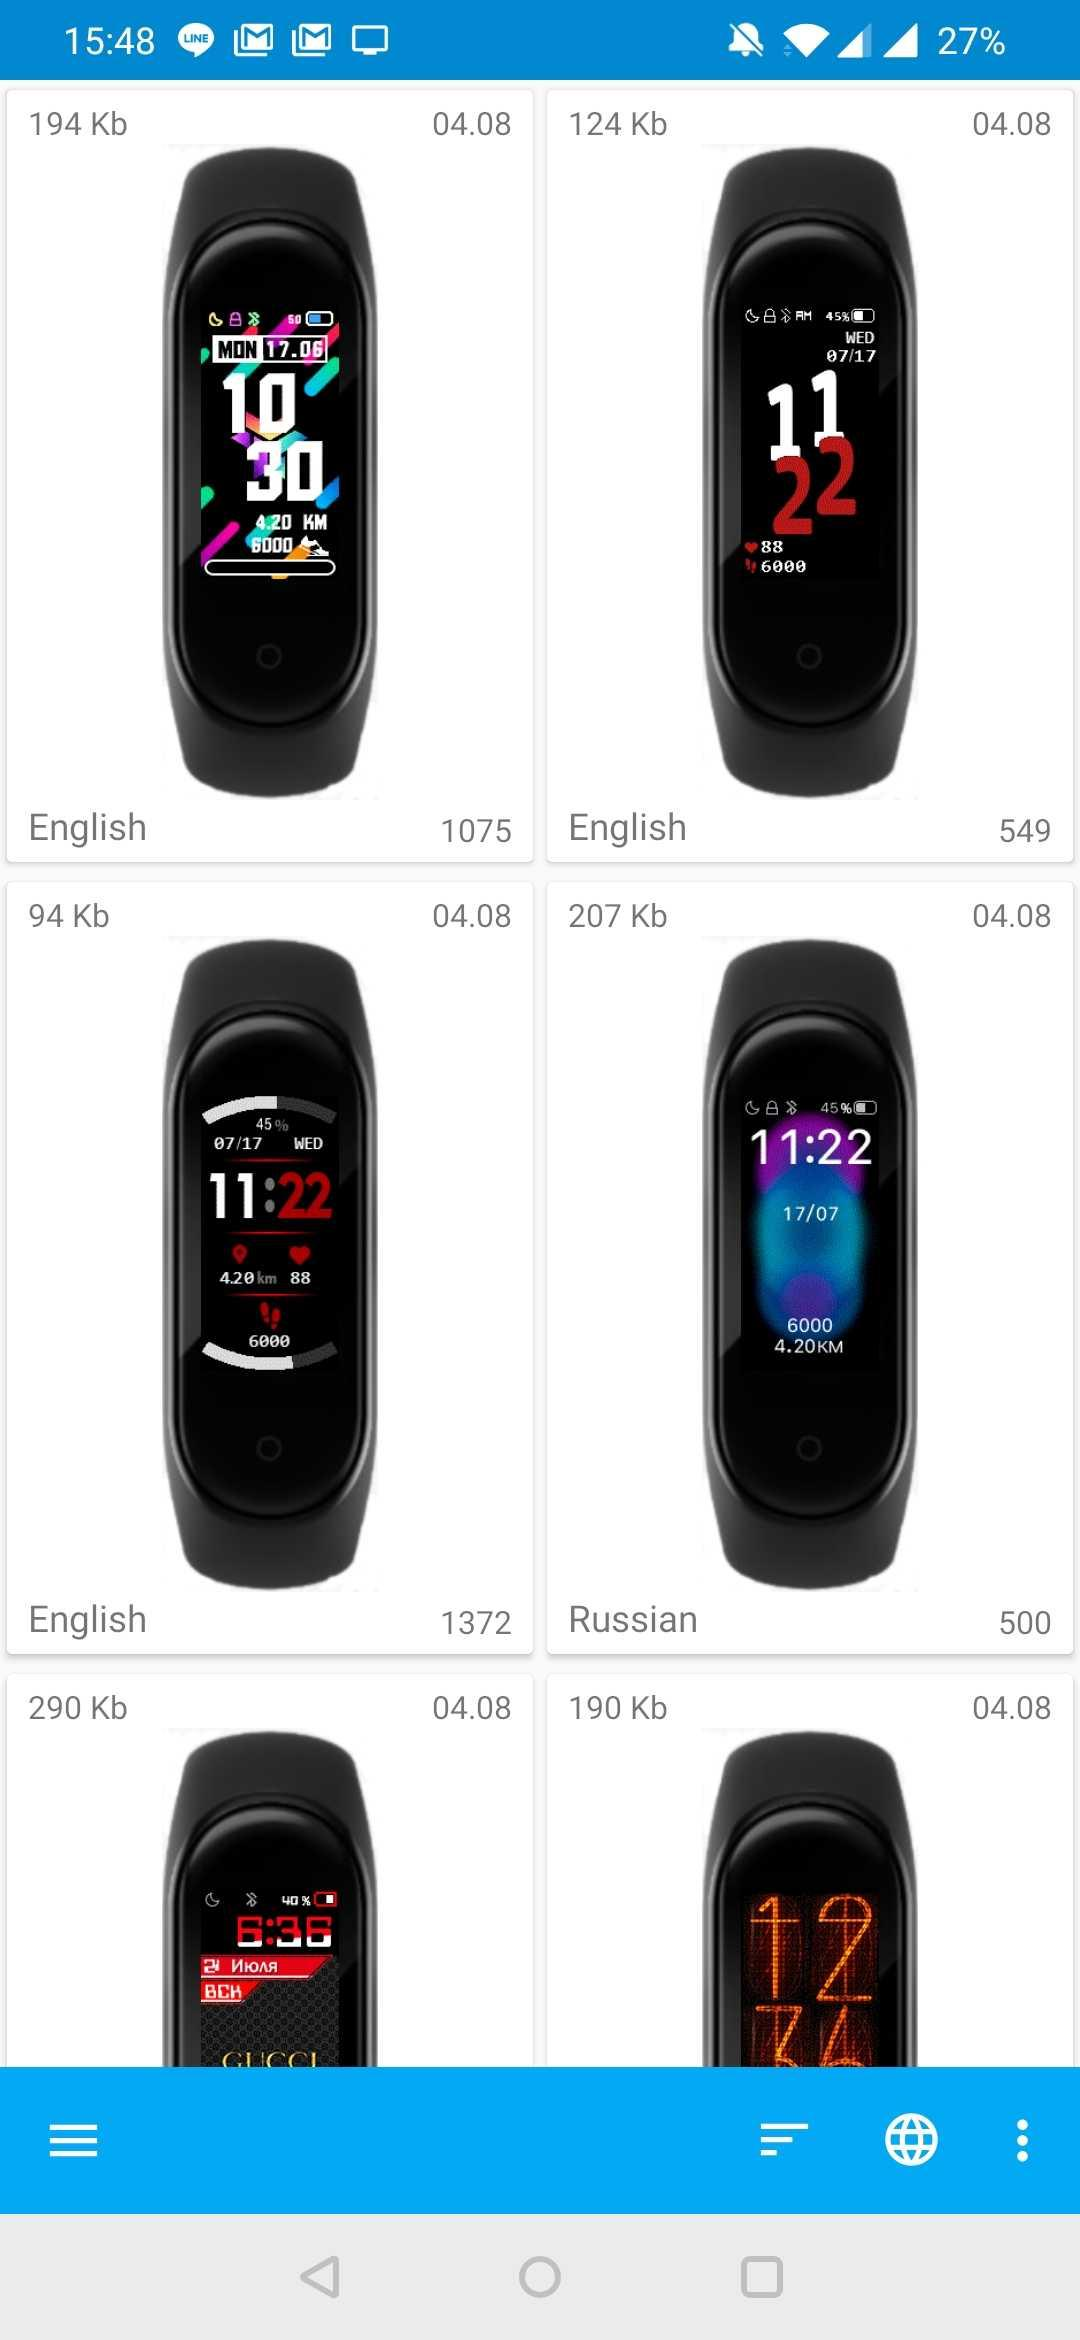 MiBand4 - WatchFace for Xiaomi Mi Band 4 でさらにテーマを設定可能